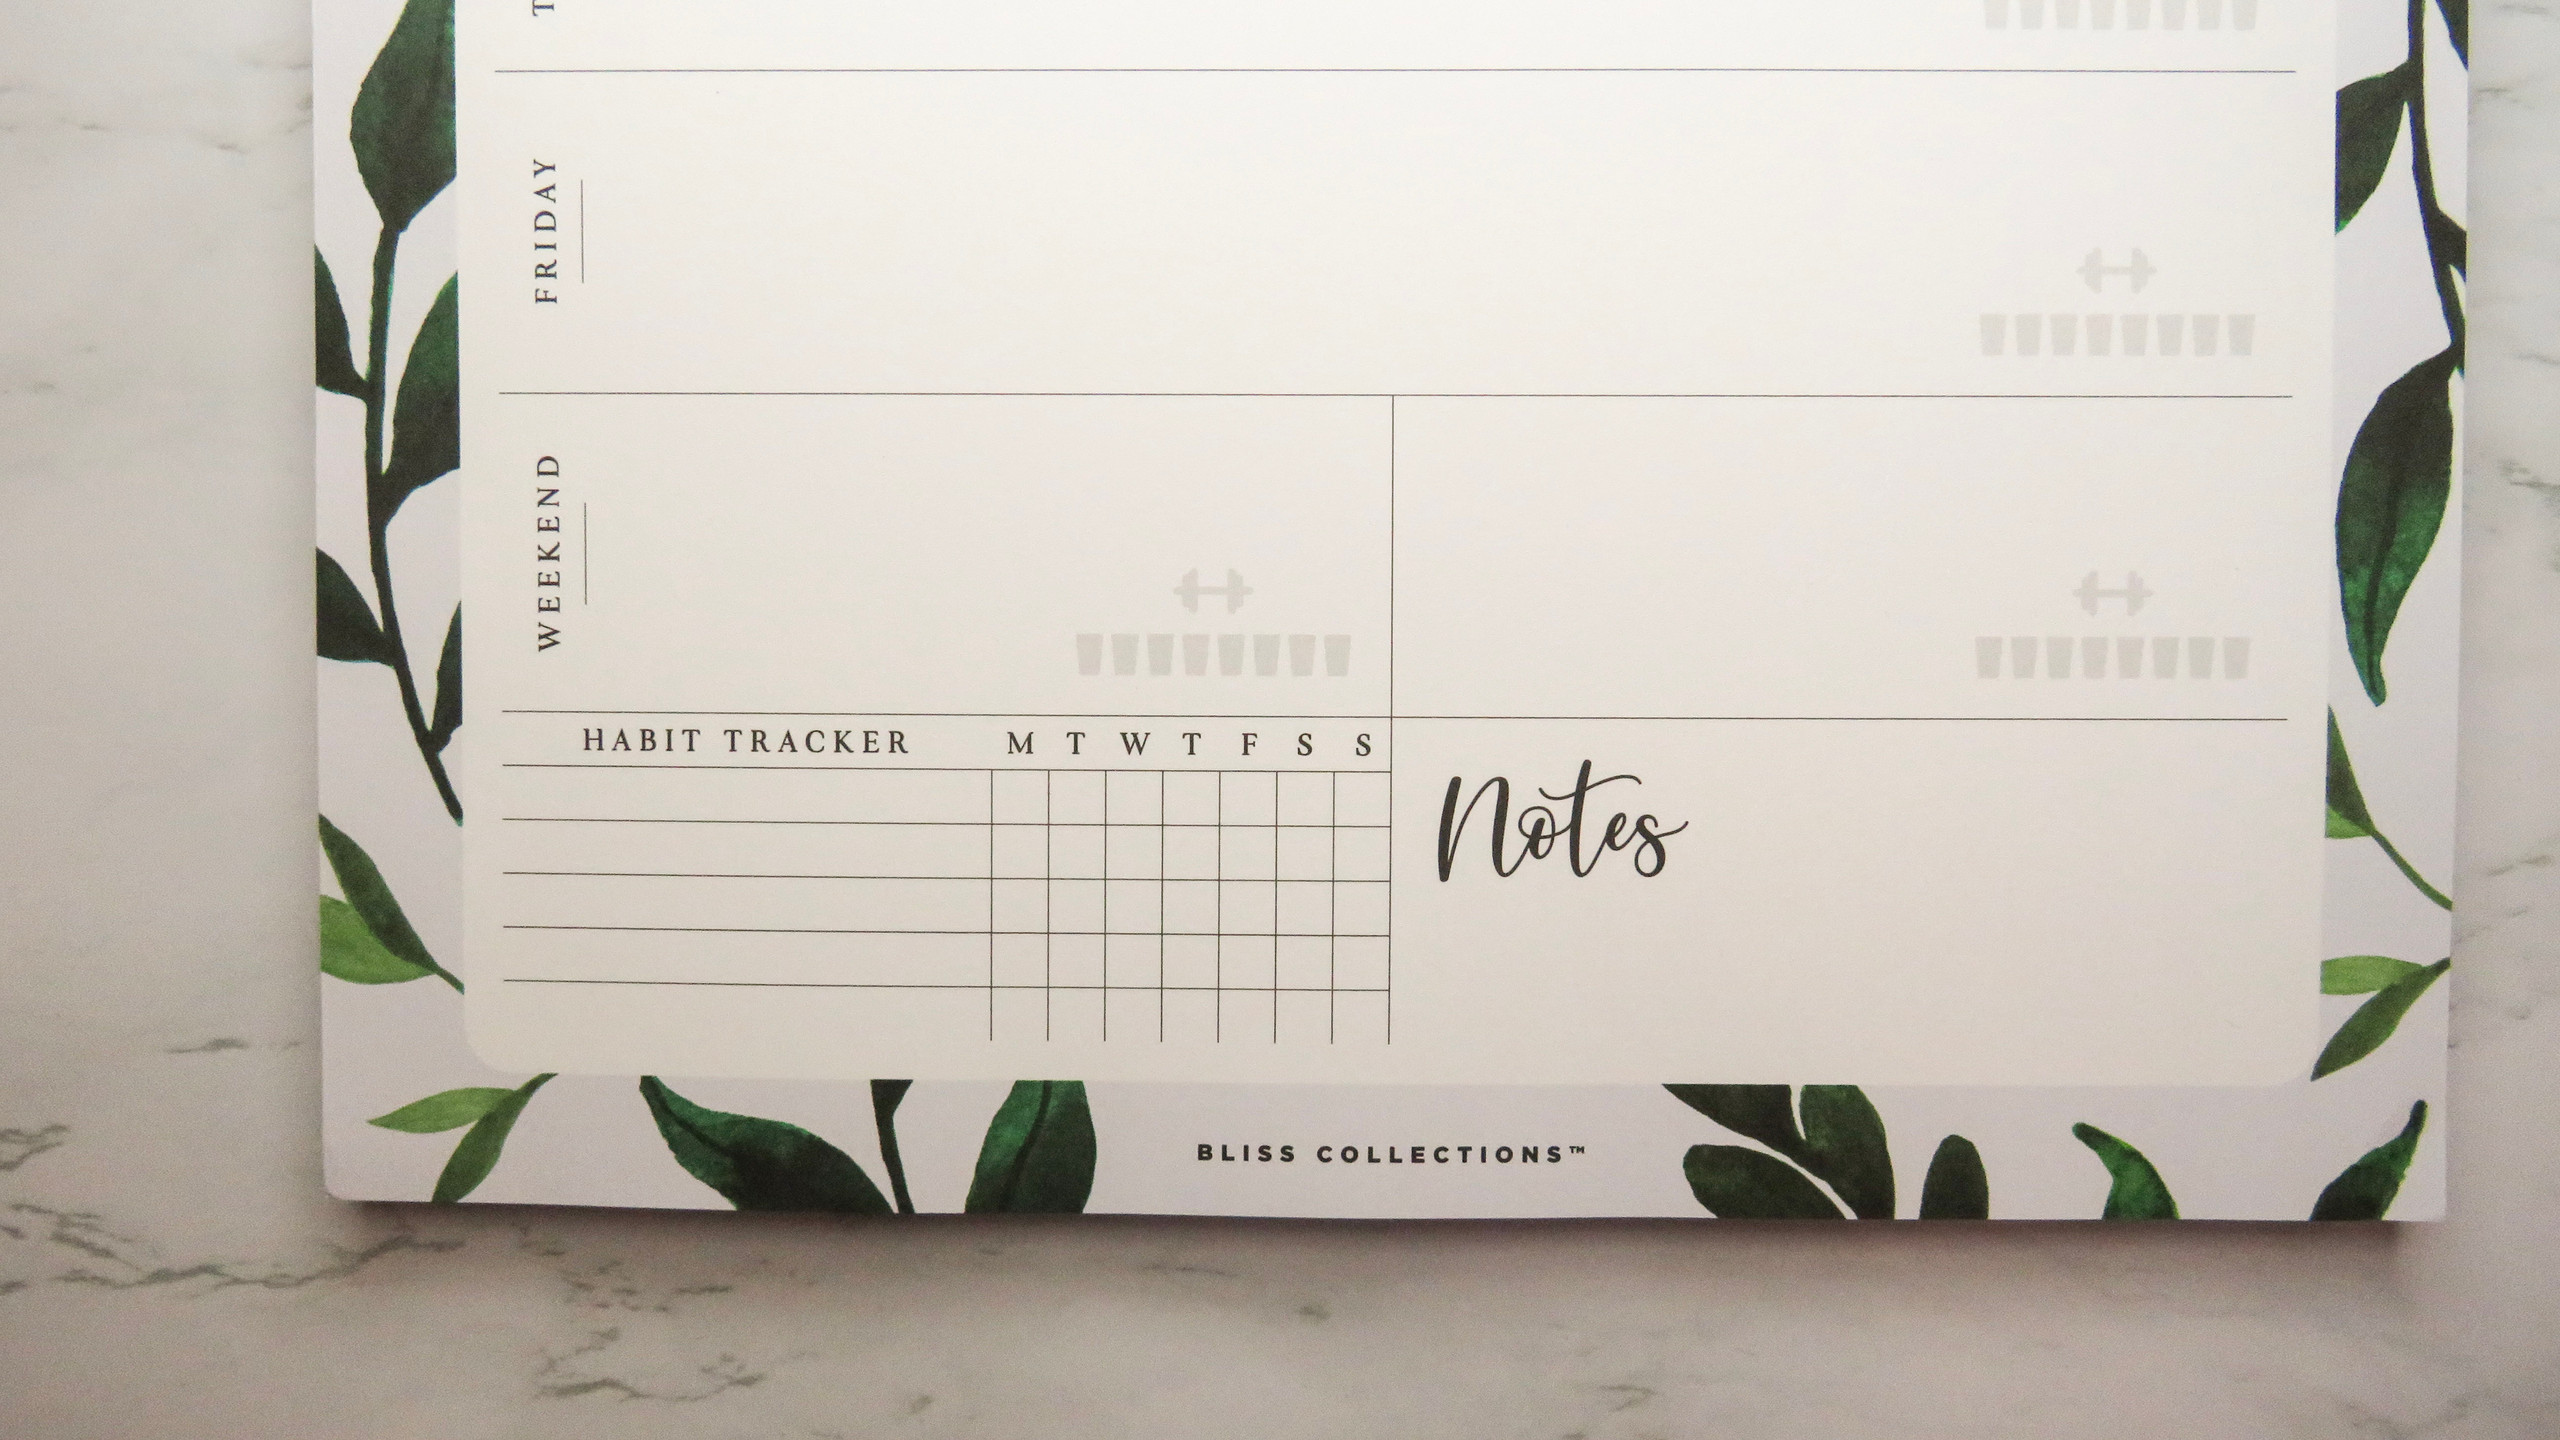 Bottom close up of the Habit Tracker & Notes area of the Bliss Collections Weekly Planner Pad